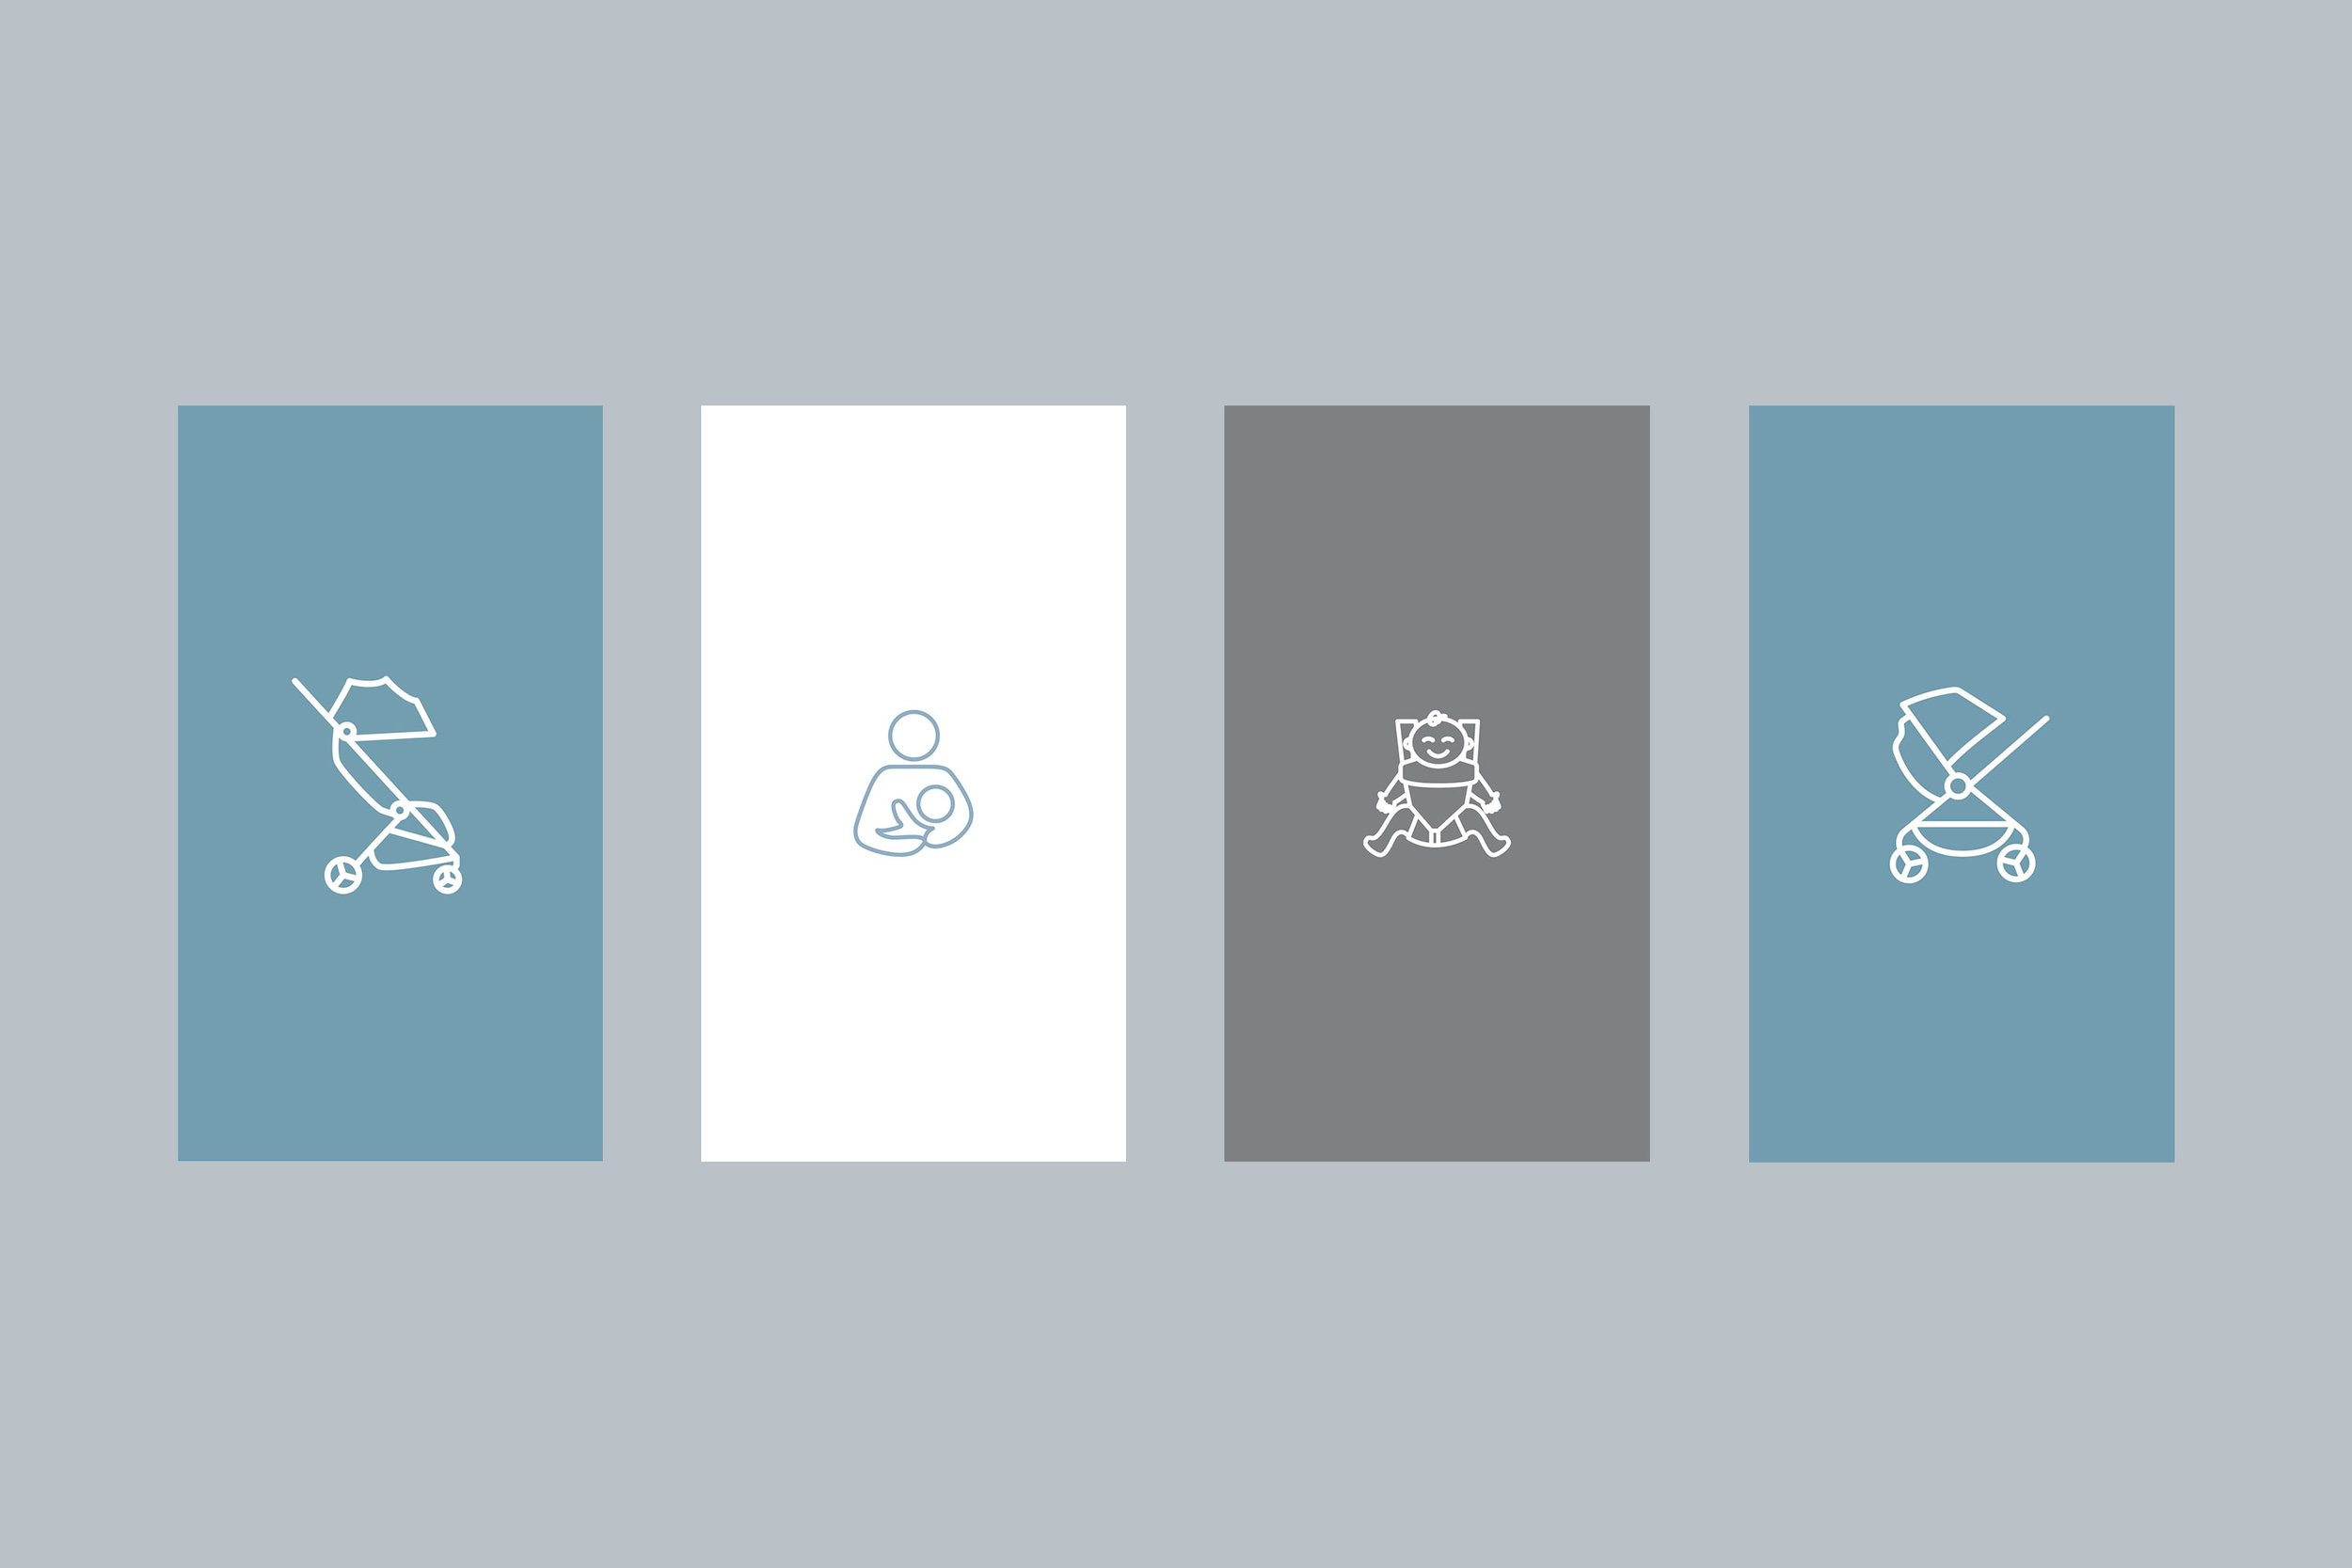 Created the Metro stroller icon (very left). The rest were pre-existing brand icons.